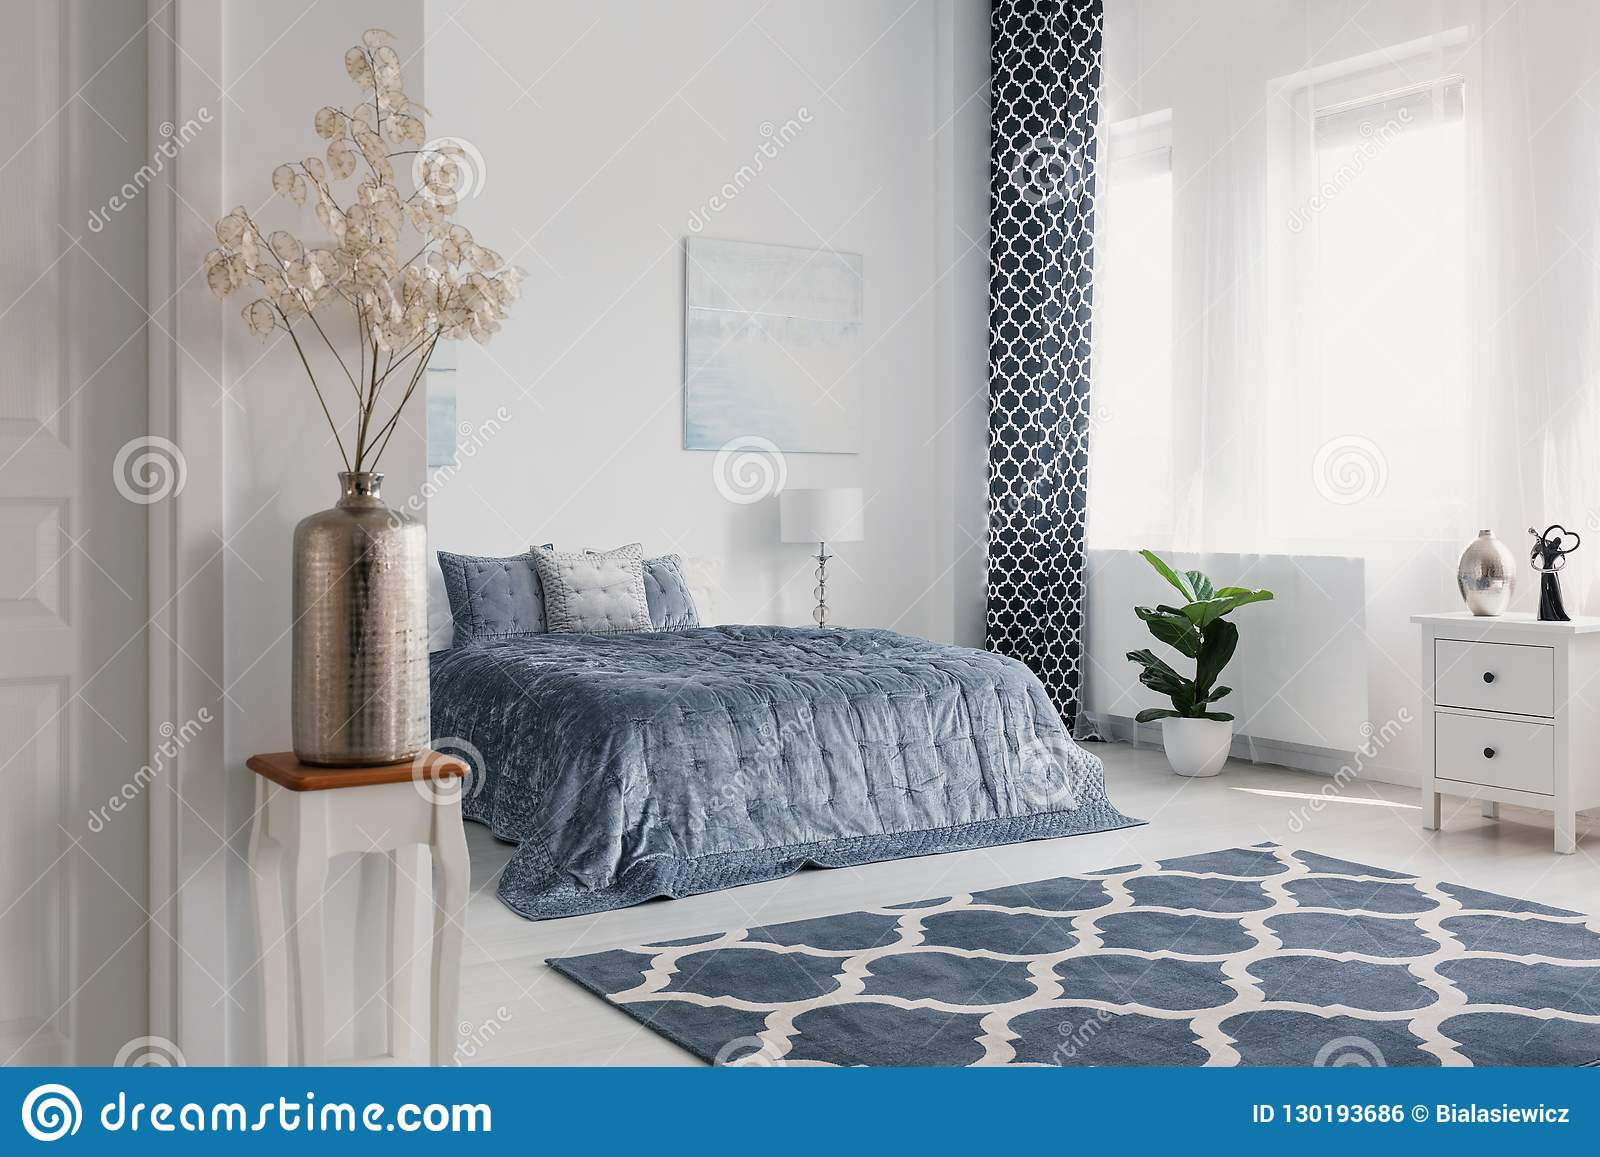 Flowers in gold vase in white bedroom interior with patterned carpet in front of blue bed. Real photo